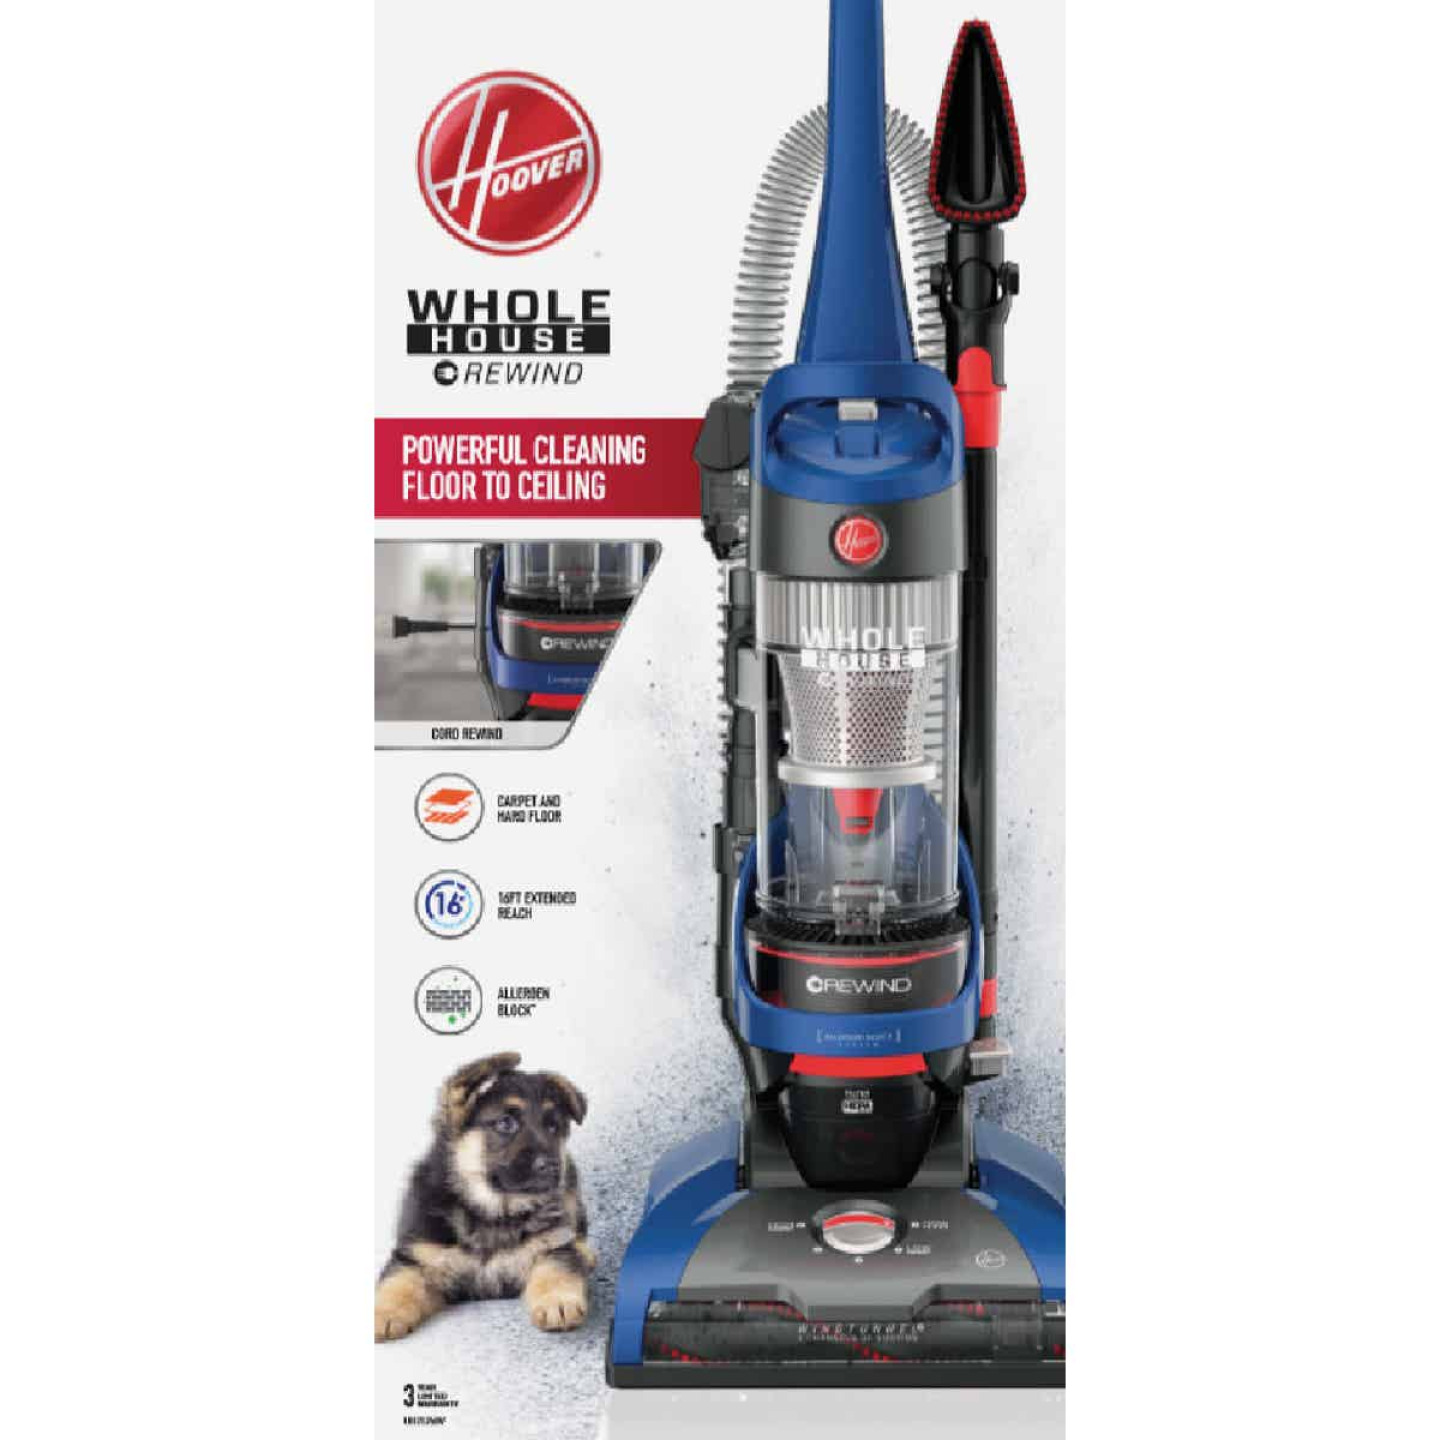 Hoover WindTunnel 2 Whole House Bagless Rewind Upright Vacuum Cleaner Image 2